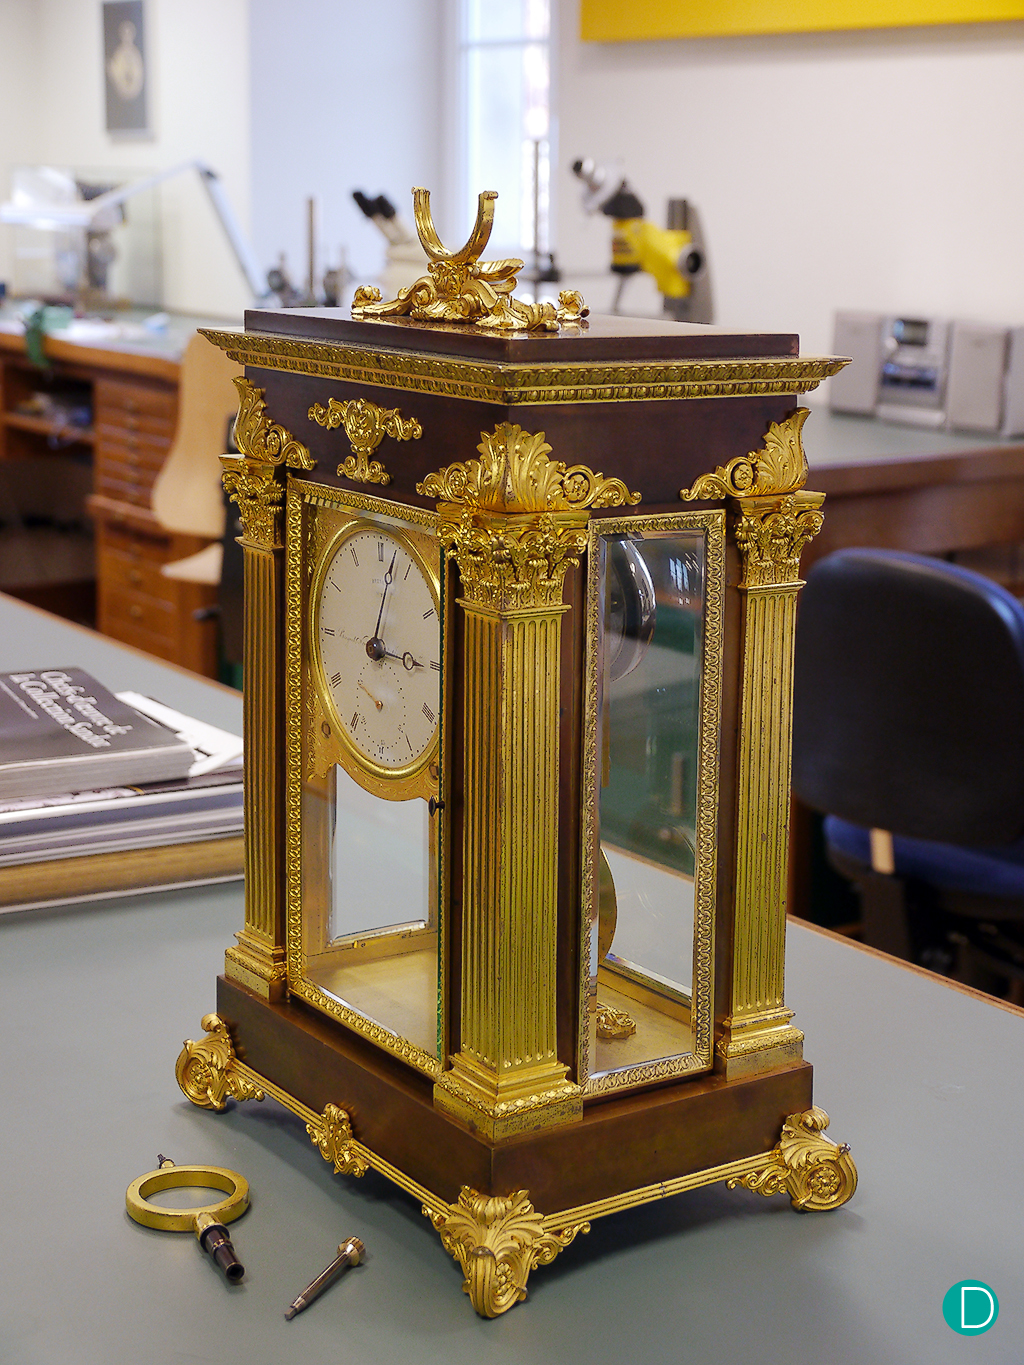 The Breguet Symphatique, just completed its restoration, and undergoing testing. The pocket watch has been removed in this photograph.